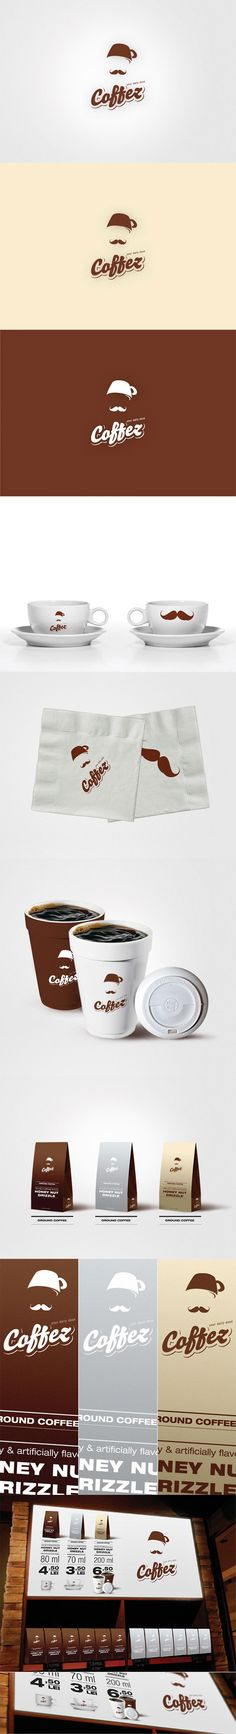 Coffez. Identity proposal for a traditional Turkish coffeehouse chain, by Balazs Szabo.